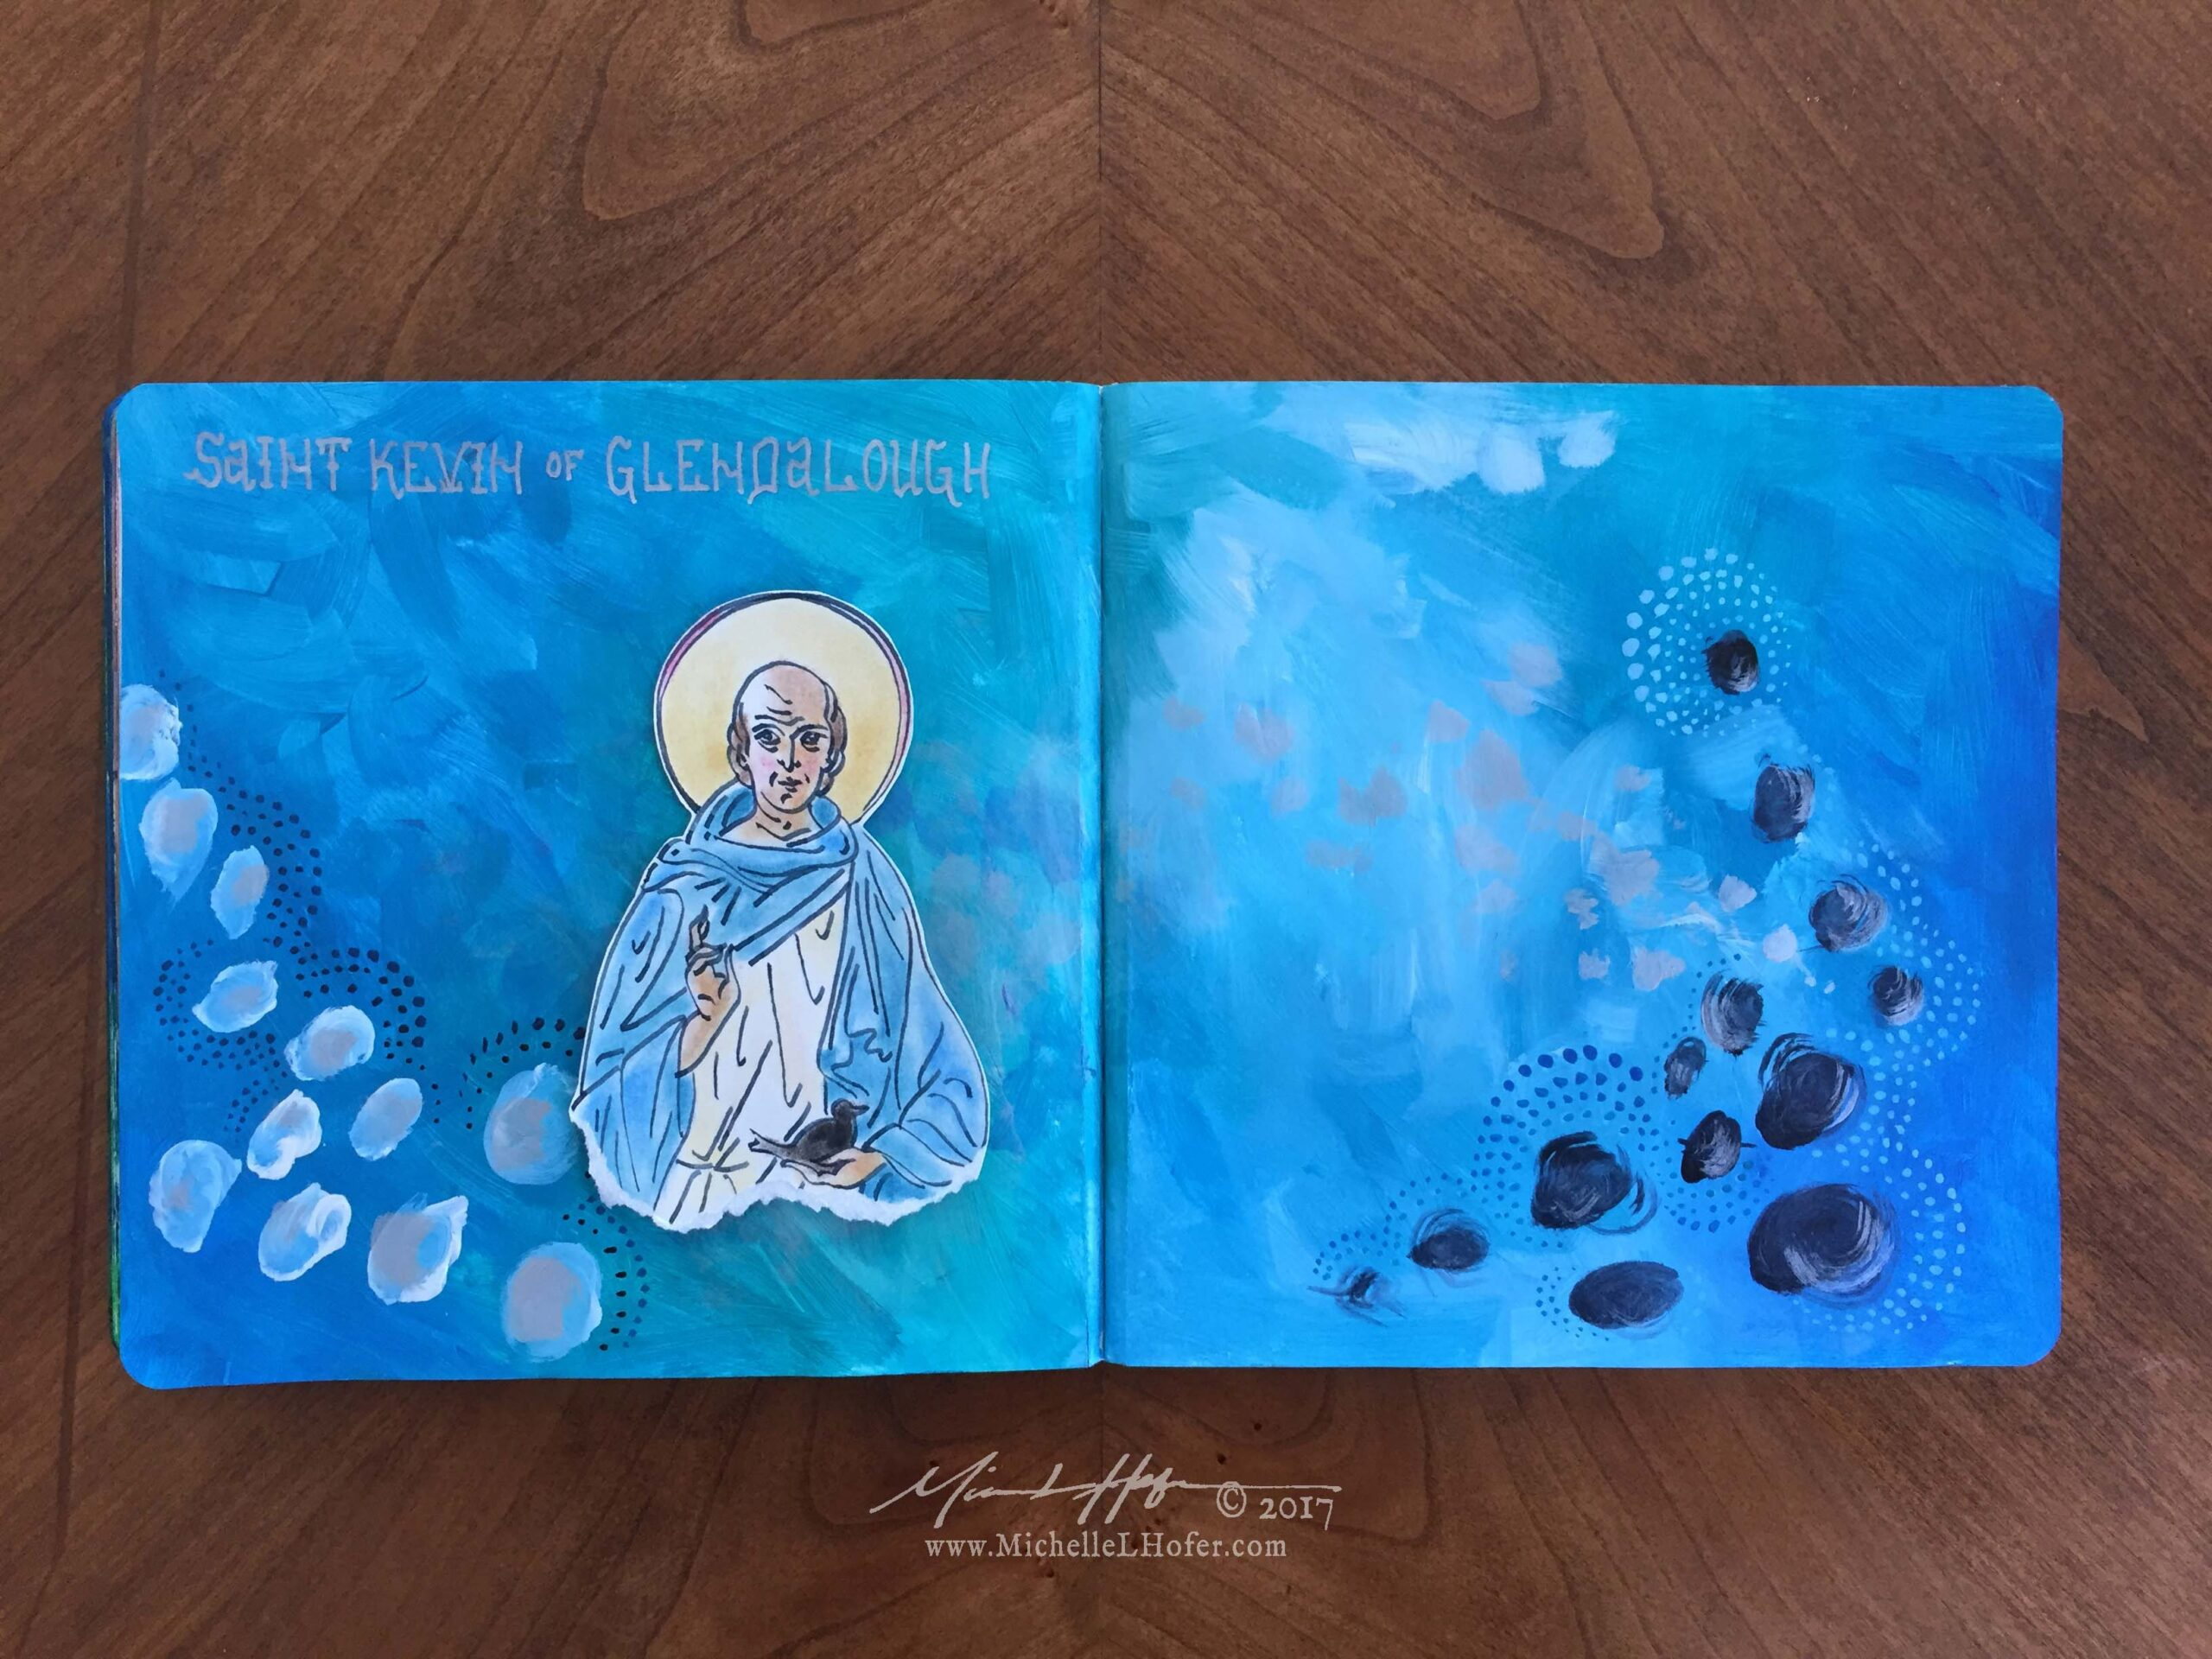 The Solitude of Saint Kevin - Abstract acrylic painted double-page book spread featuring a pen and ink portrait of Saint Kevin of Glendalough with hand lettered name from the Book of Saints by Michelle L Hofer.